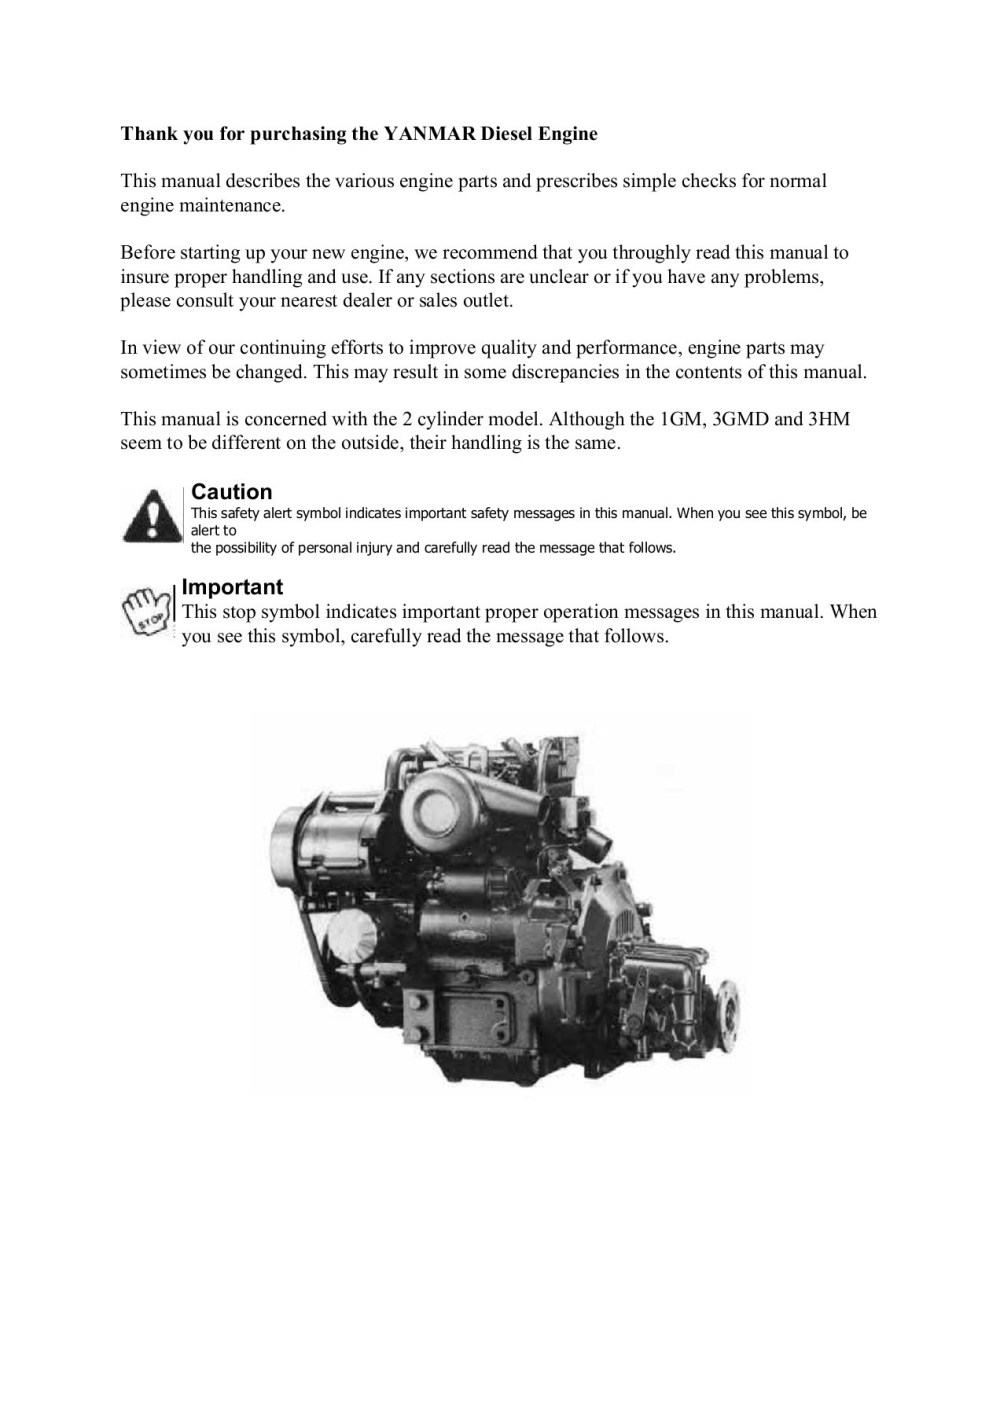 medium resolution of yanmar gm operating manual pages 1 50 text version fliphtml5